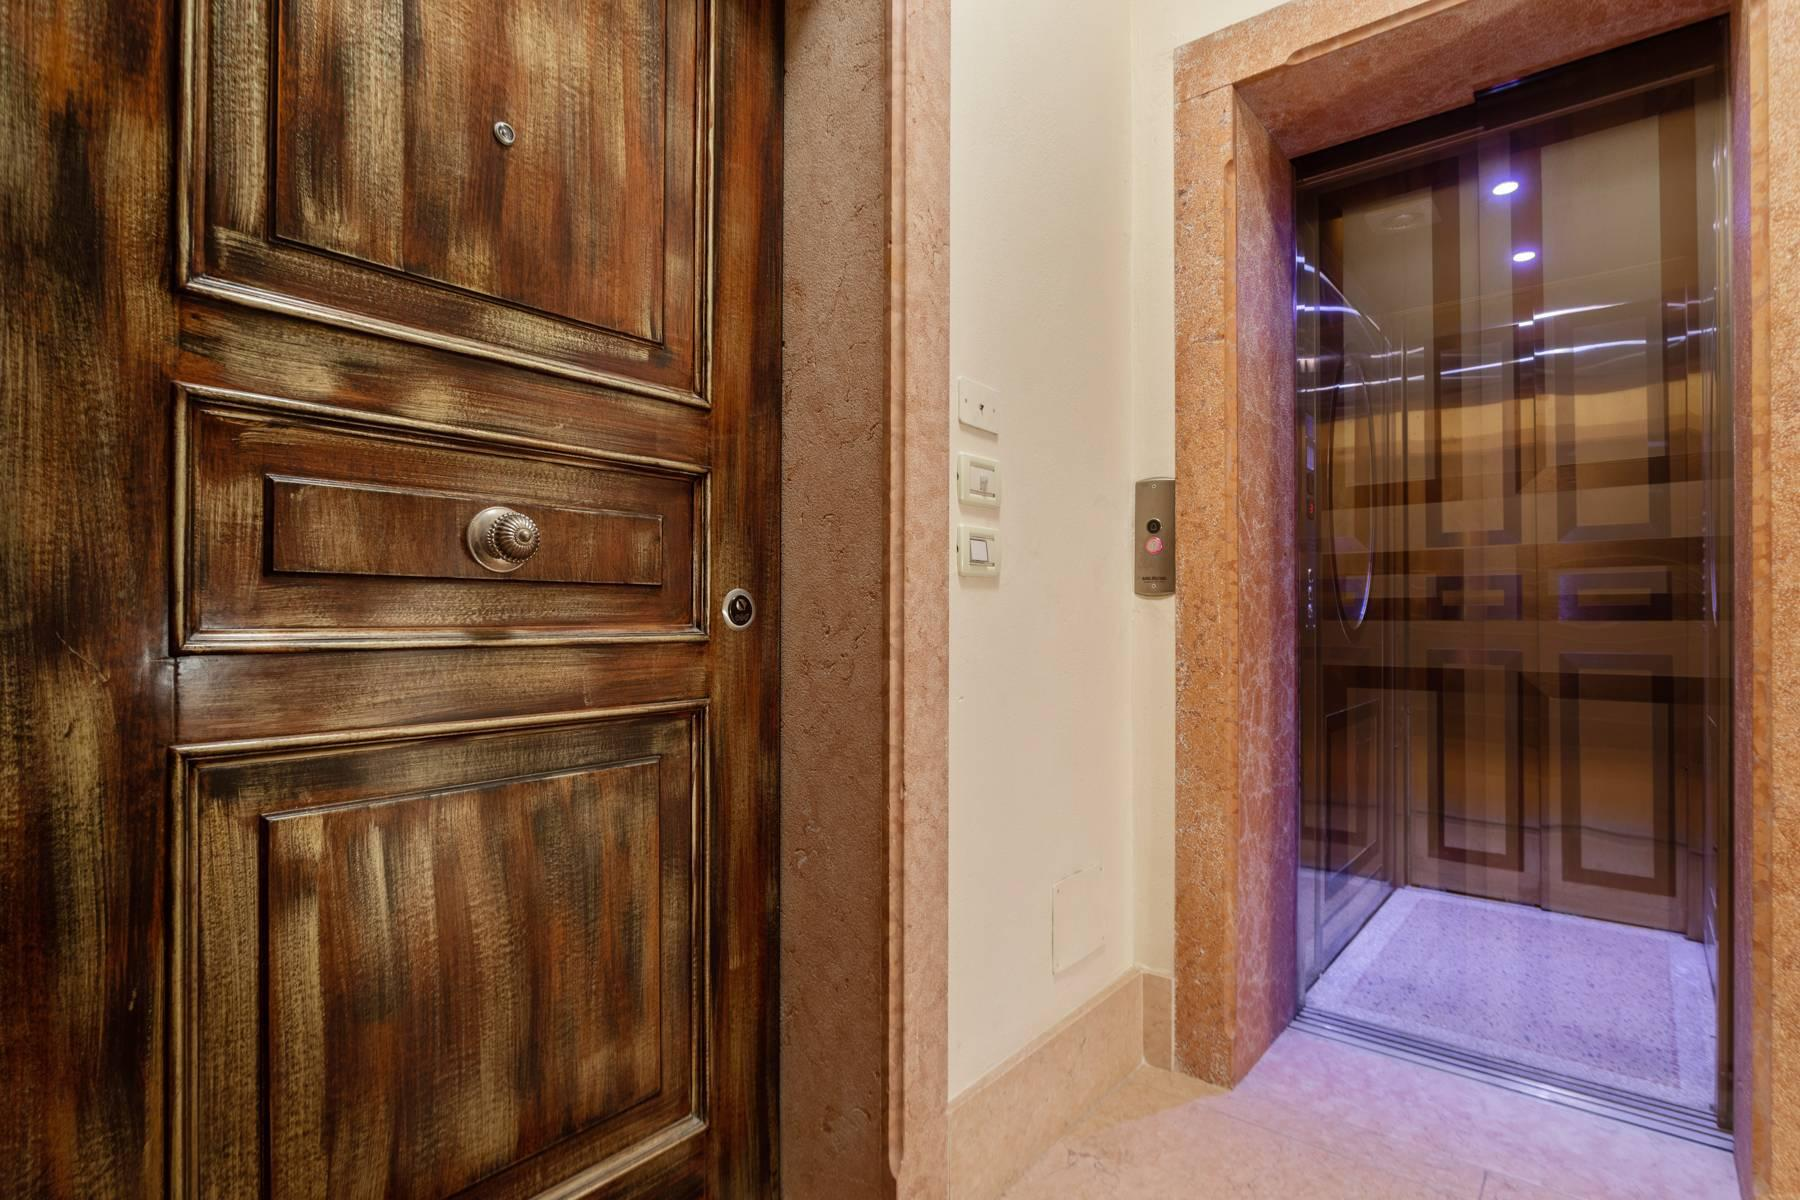 Exquisite apartment just few steps away from Piazza delle Erbe - 15